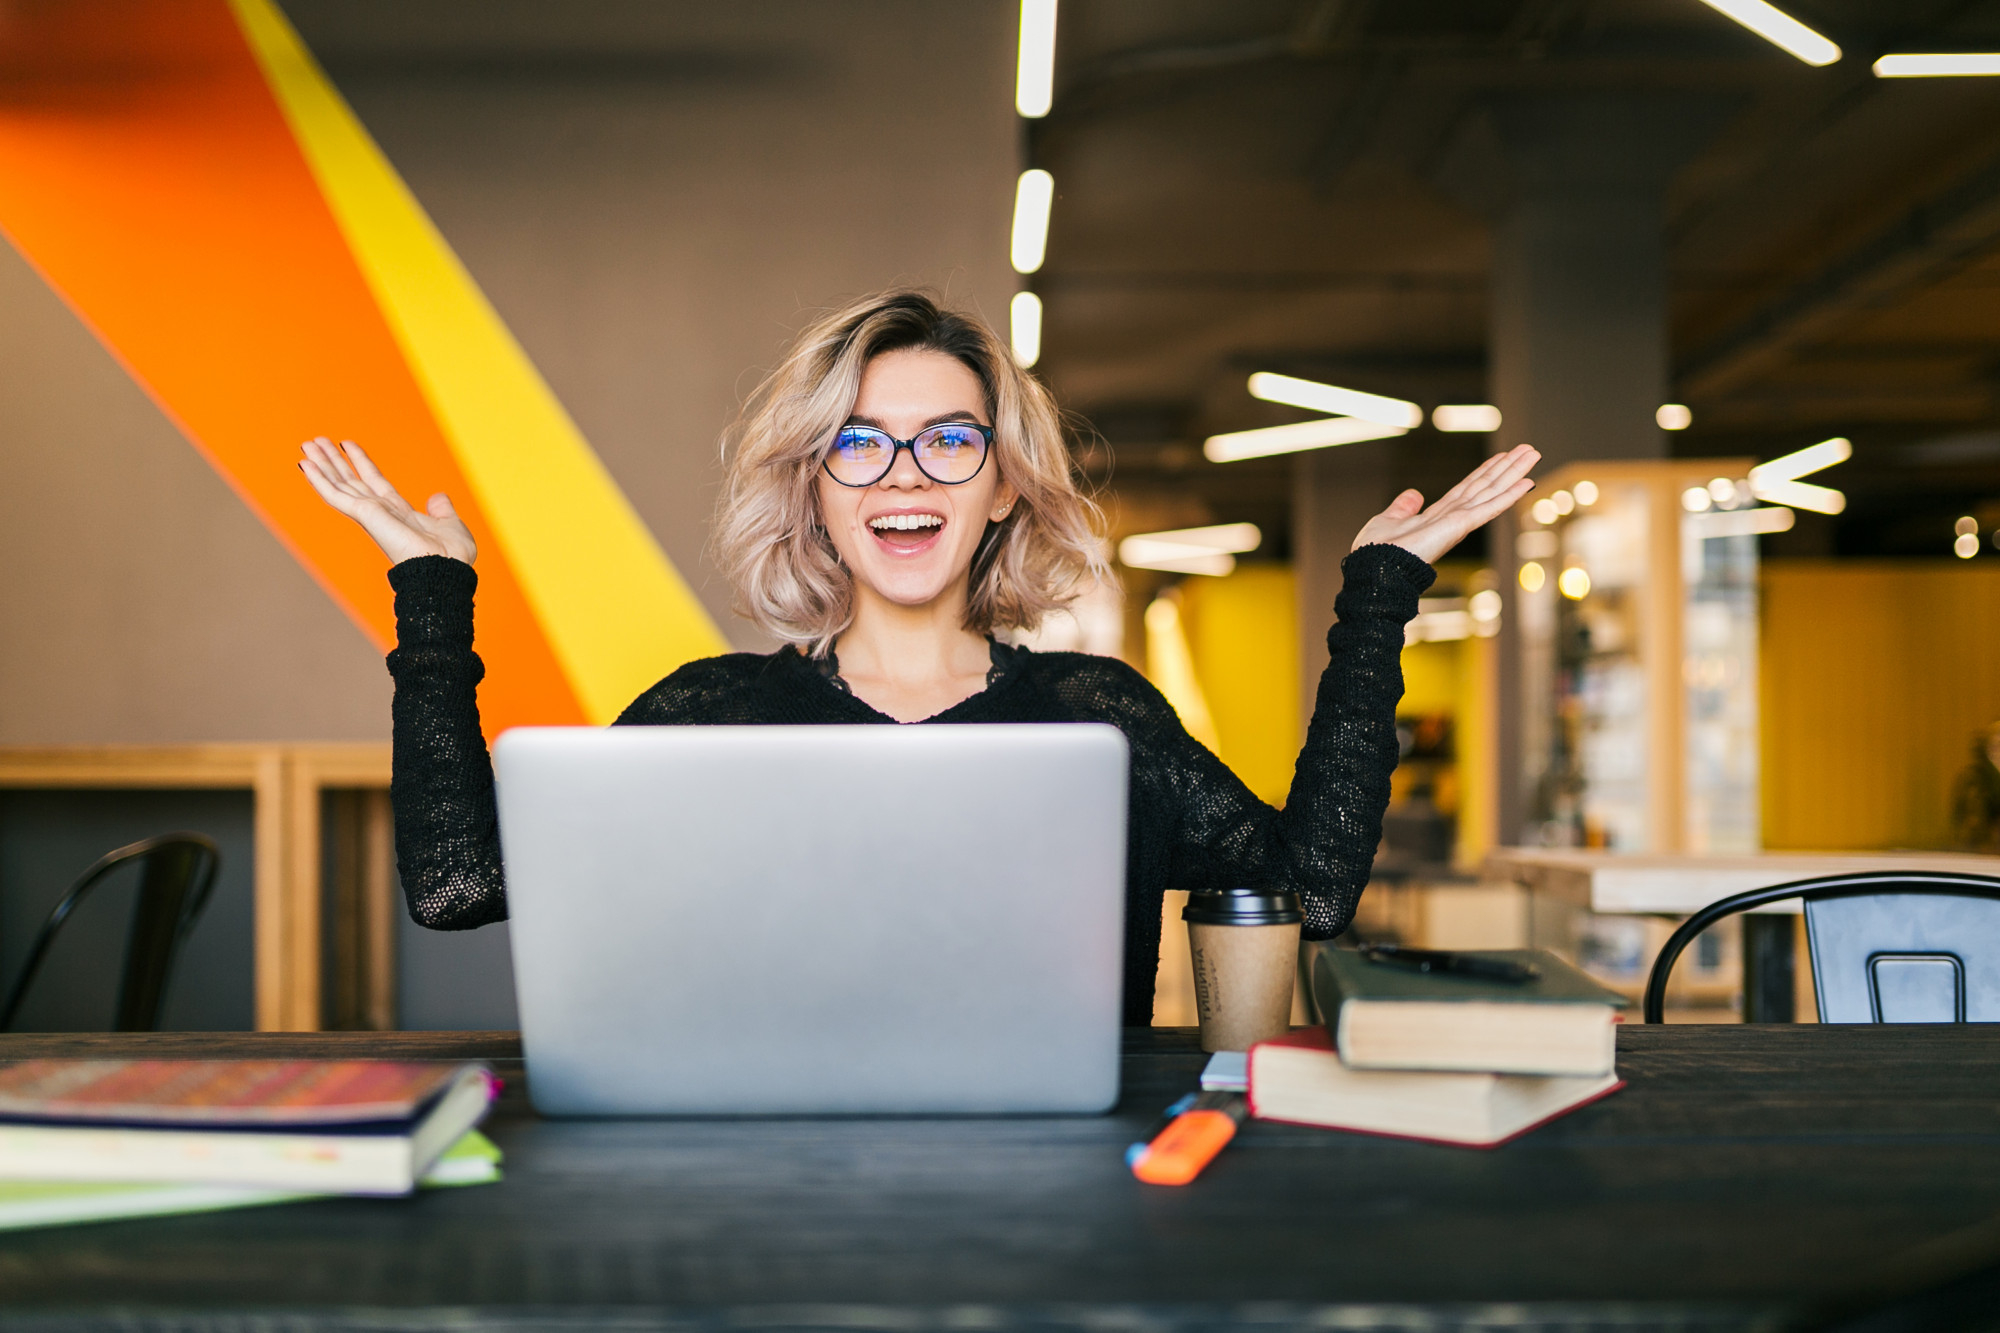 funny-happy-excited-young-pretty-woman-sitting-table-black-shirt-working-laptop-co-working-office-wearing-glasses